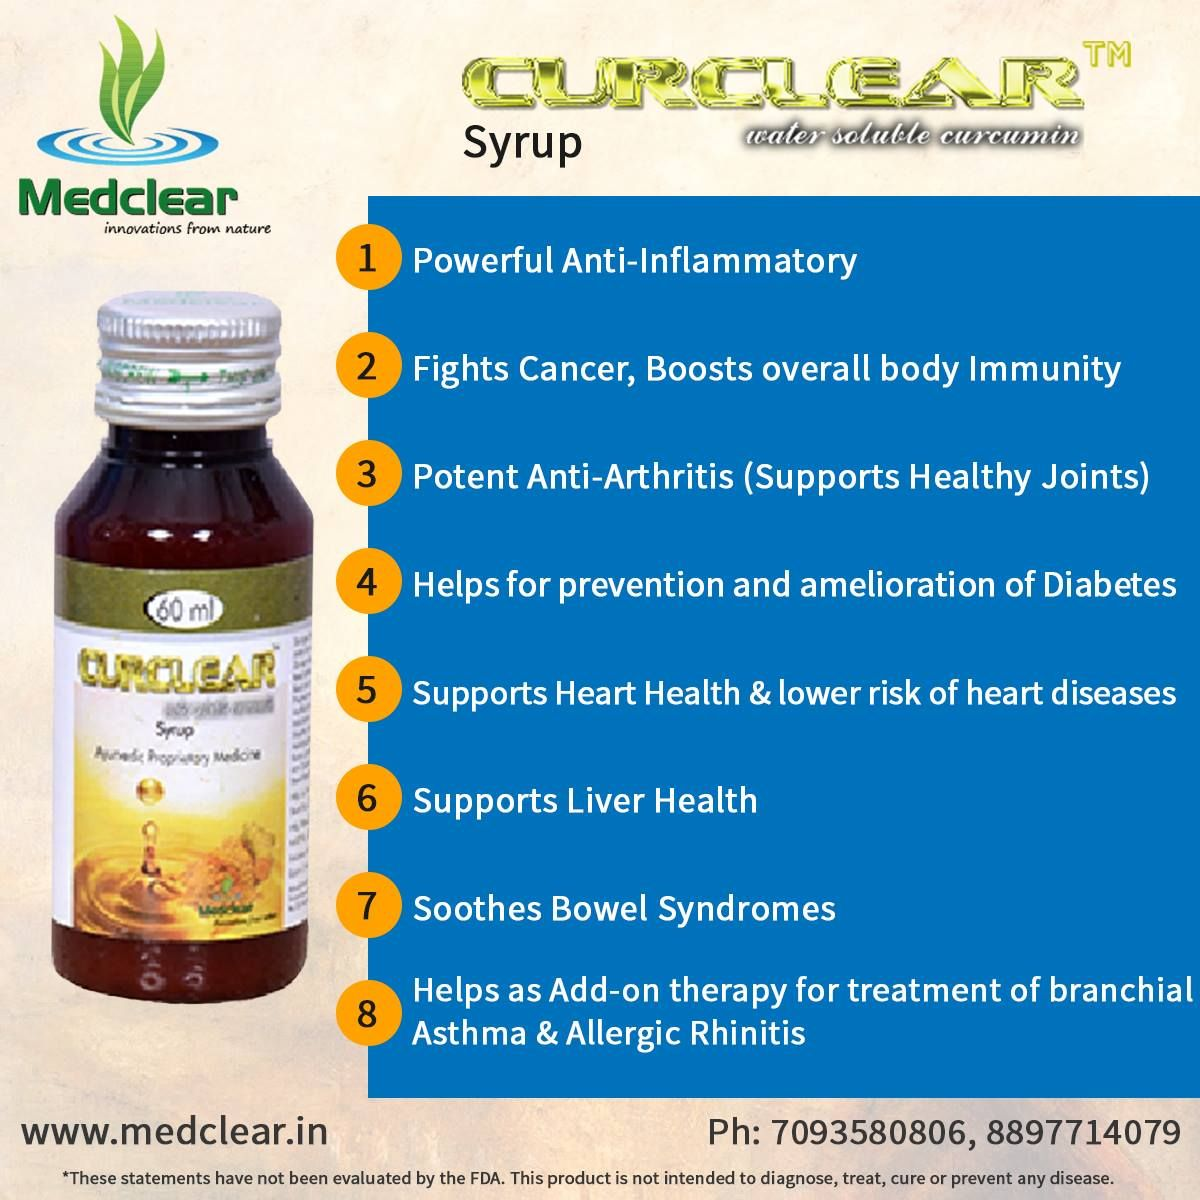 Health Benefits of #Curclear Syrup - Water Soluble #Curcumin.  For more about our products dial on: 7093580806, 8897714079 || Visit: http://www.medclear.in/